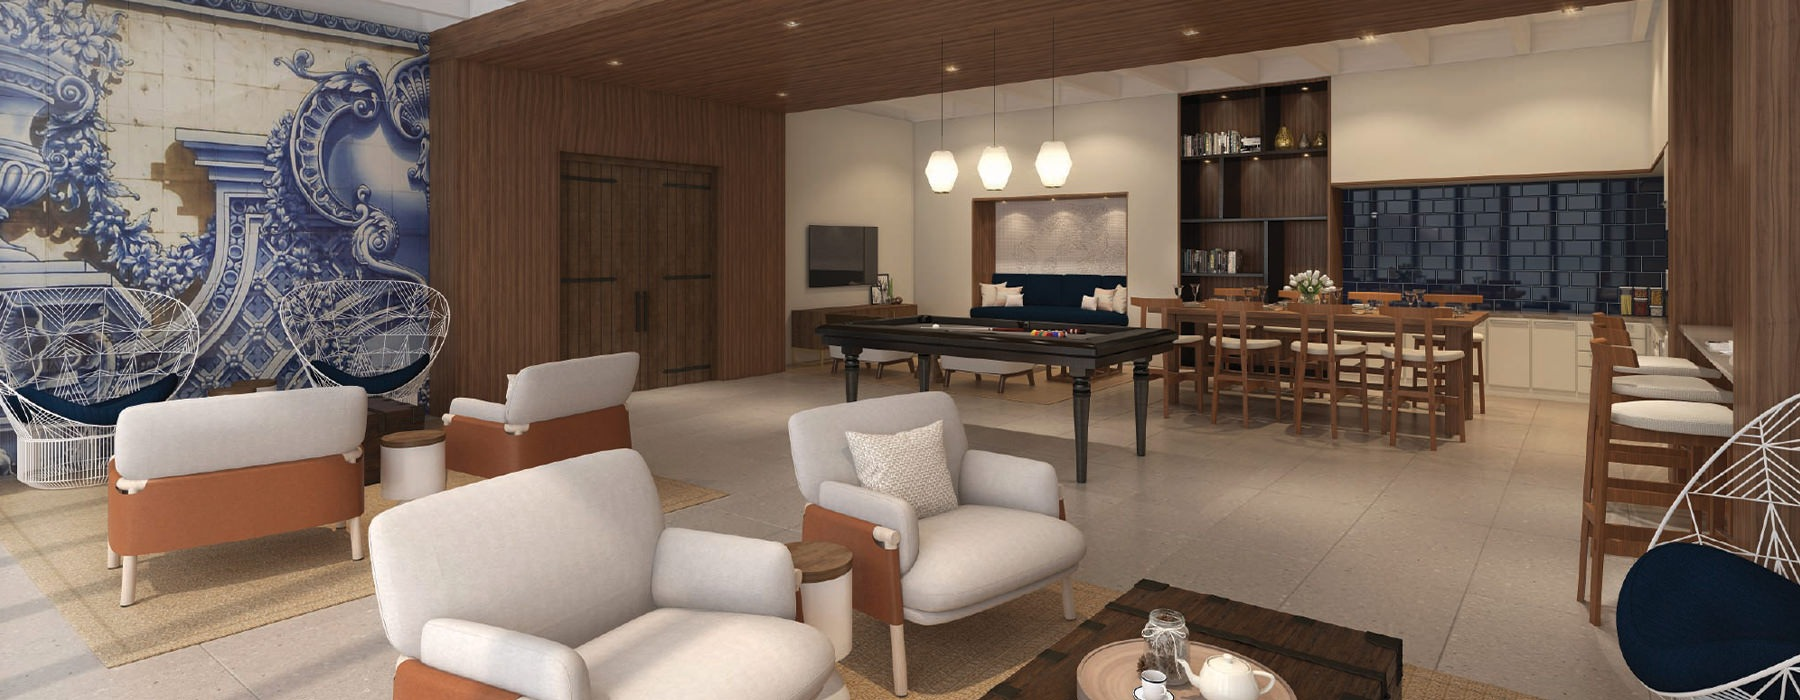 Resident Game Room and a pool table and lounge seating